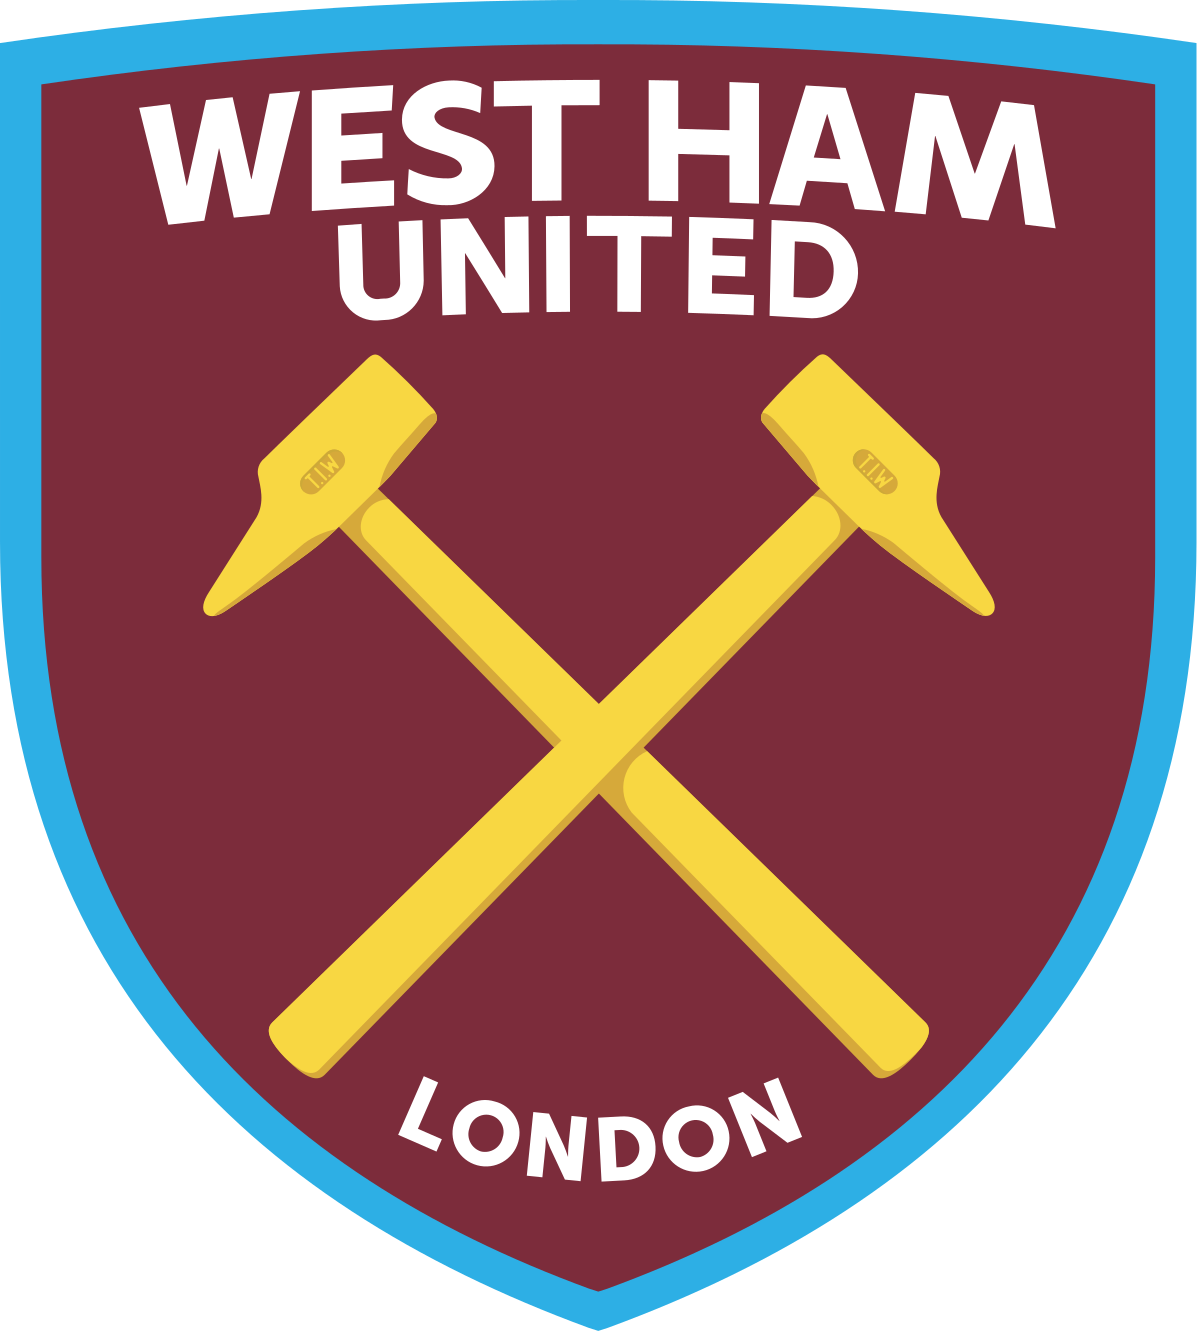 Credit: West Ham United FC